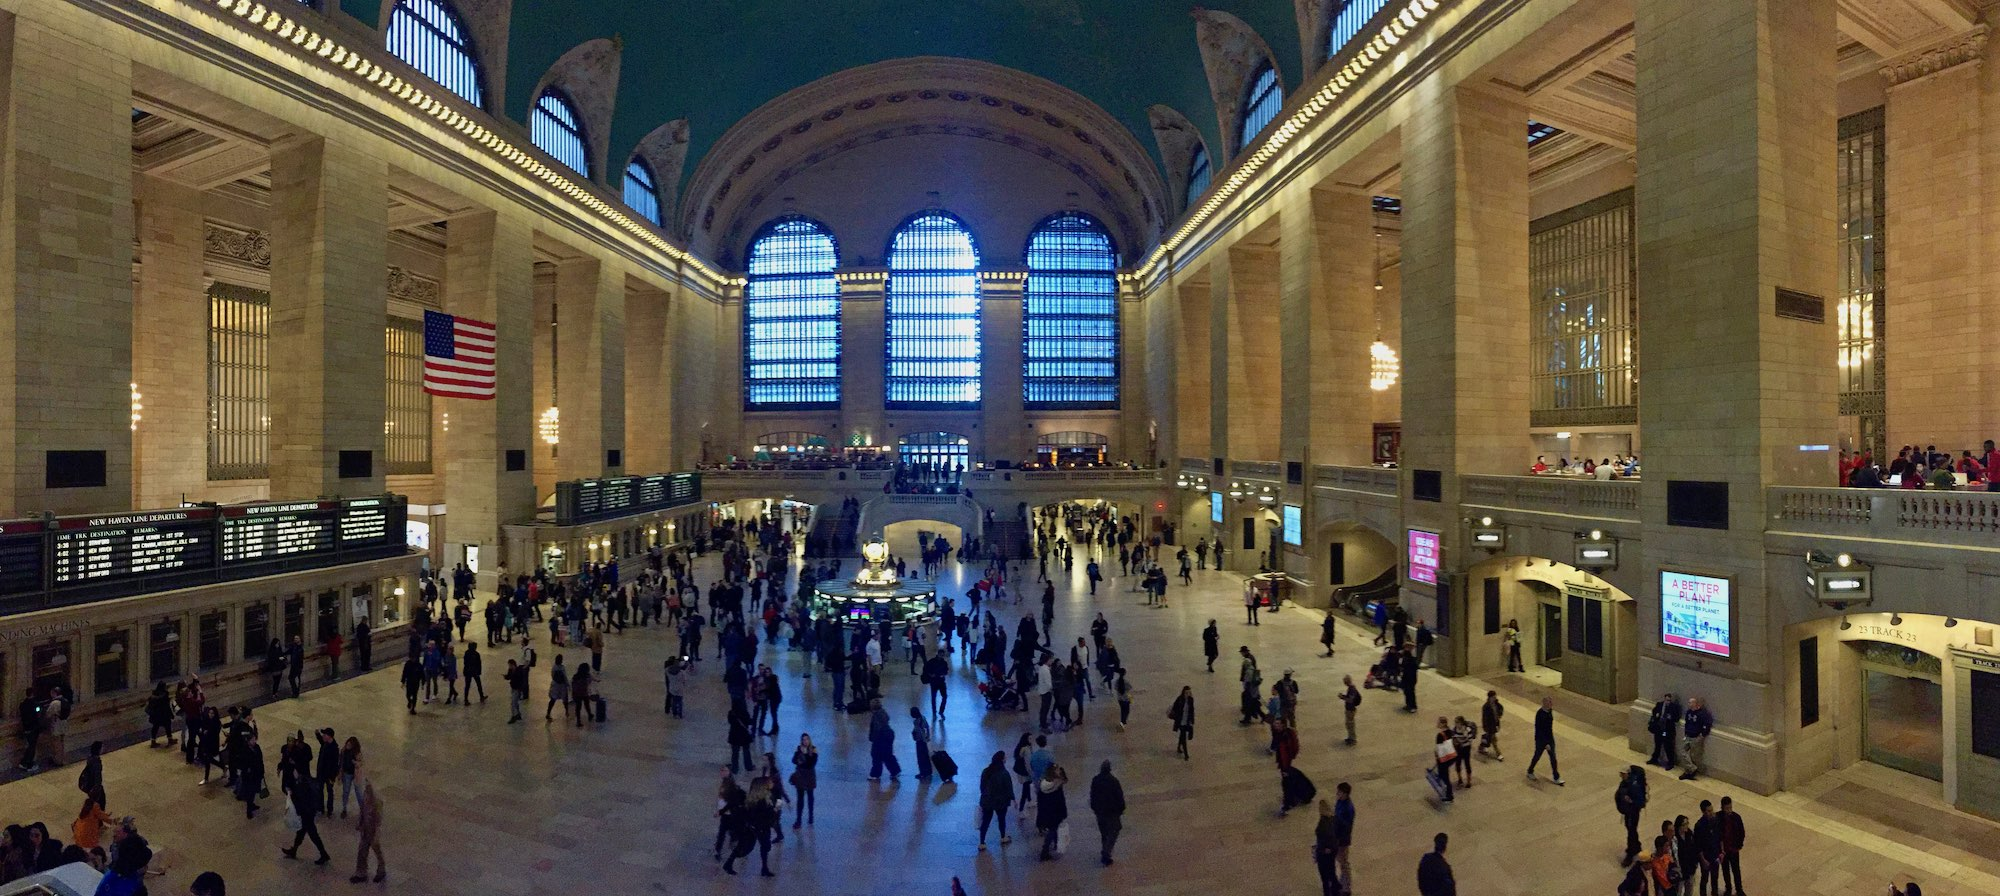 Das Grand Central Terminal in New York